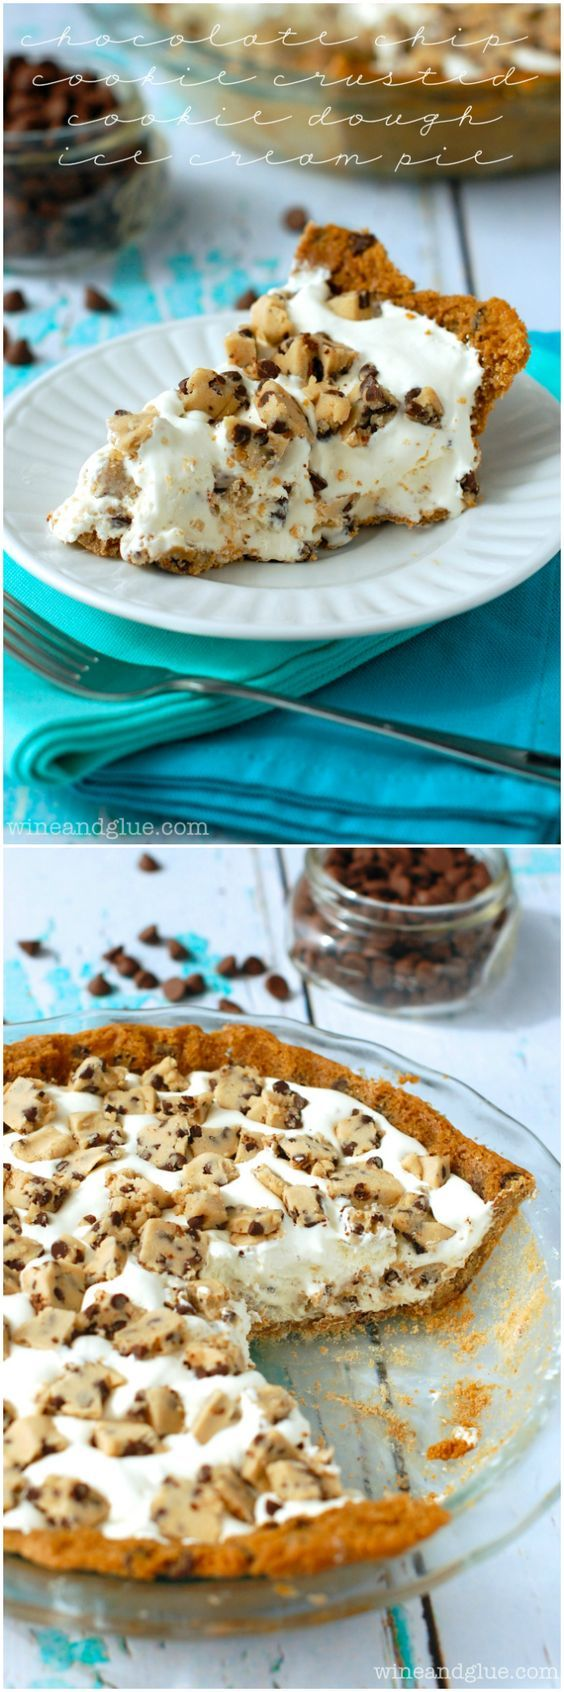 Chocolate Chip Cookie Crusted Cookie Dough Ice Cream Pie - Wine & Glue: